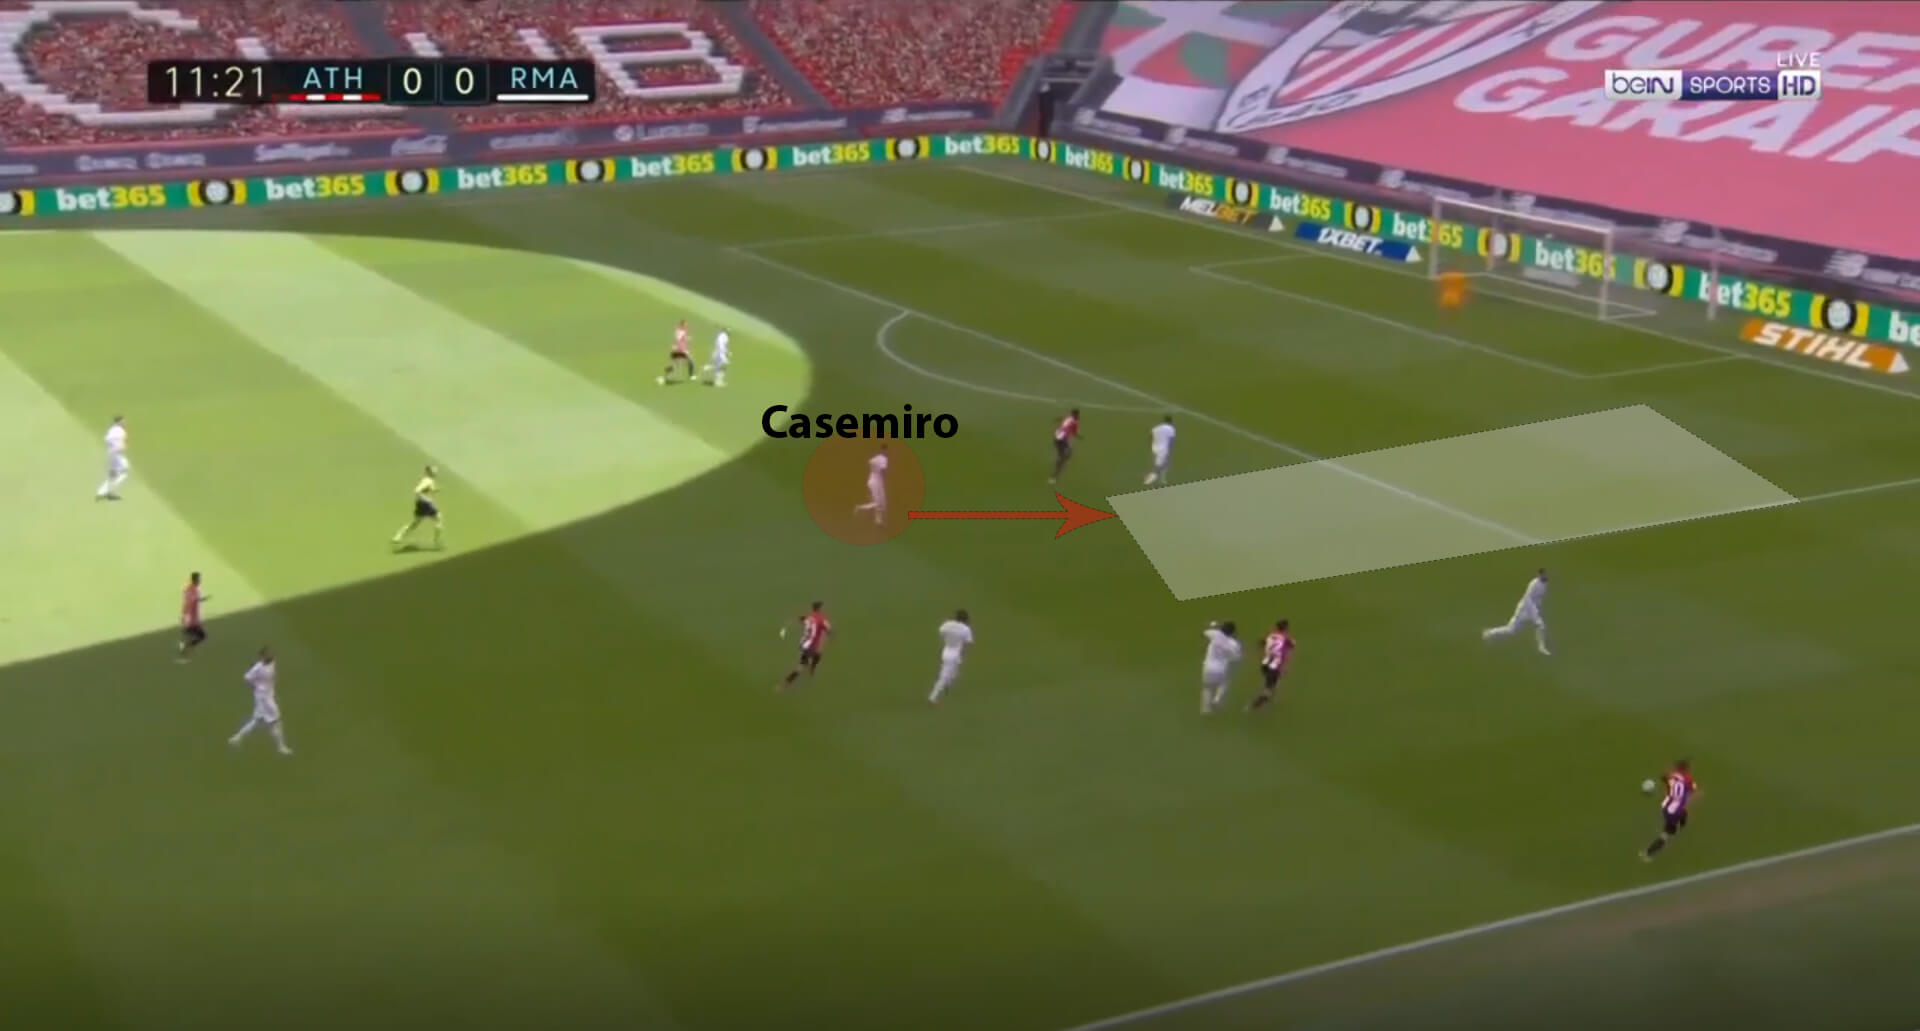 Casemiro 2019/20 - scout report - tactical analysis tactics